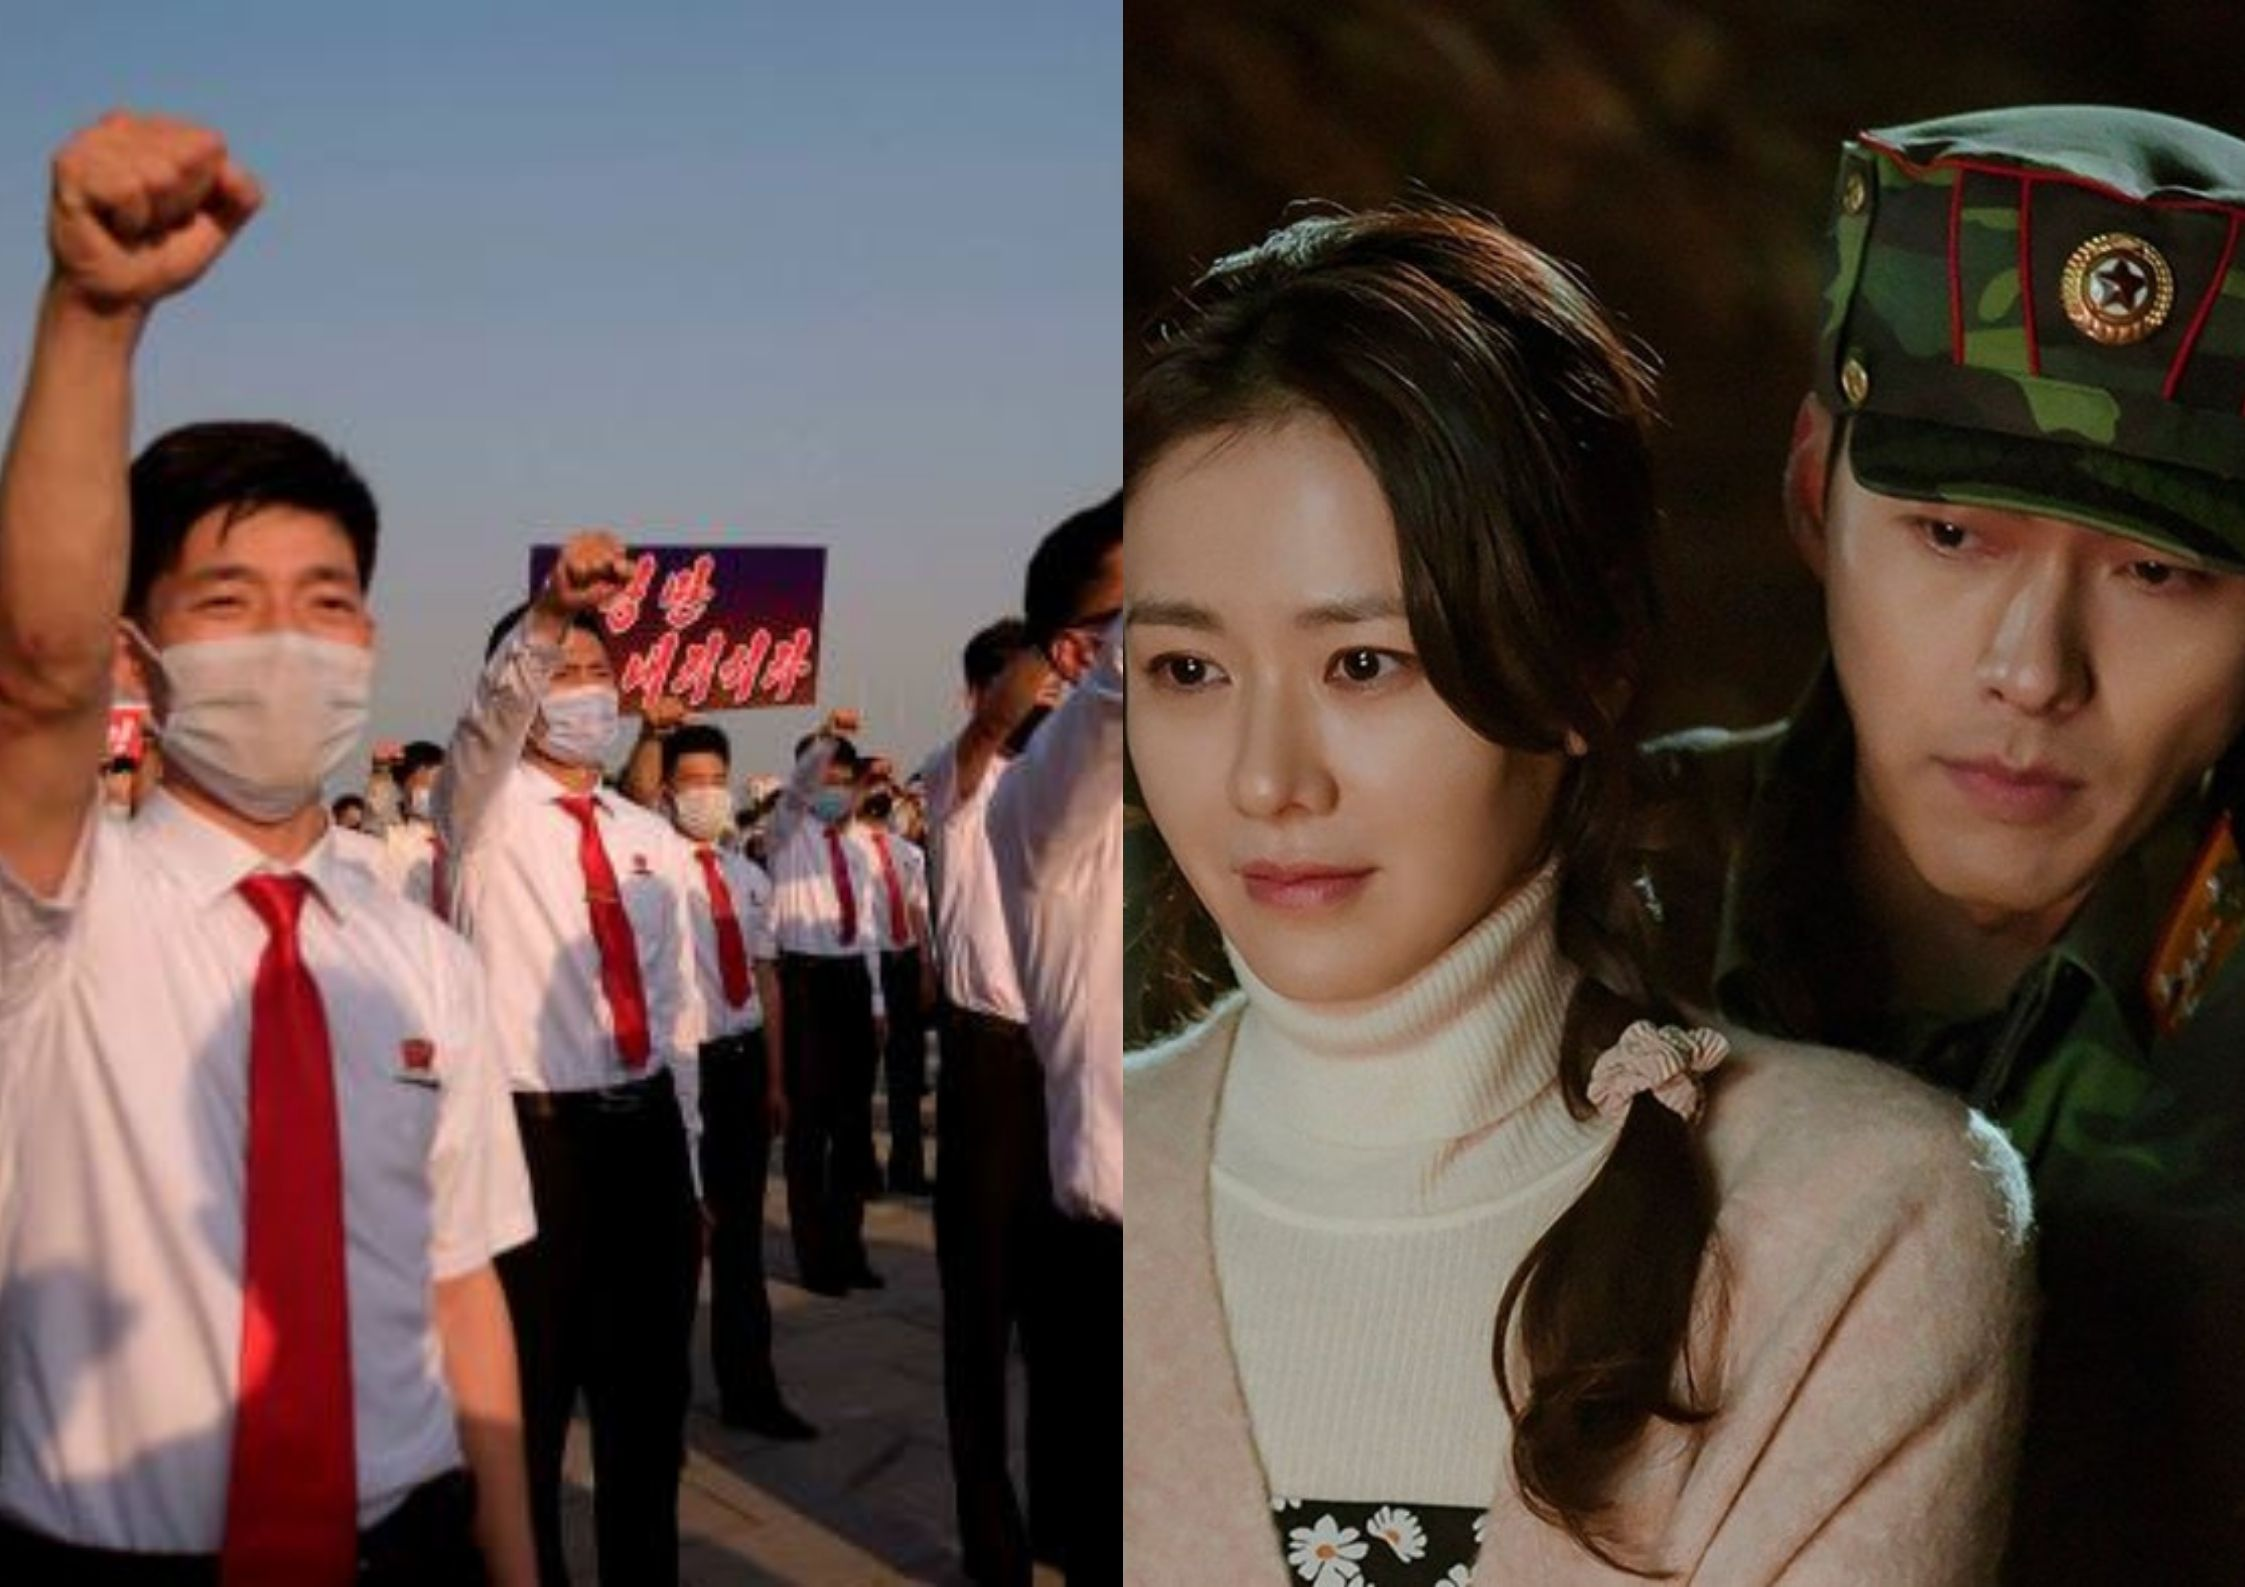 10,000 North Korean Students Surrender Themselves After Illegally Enjoying K-Dramas and K-pop